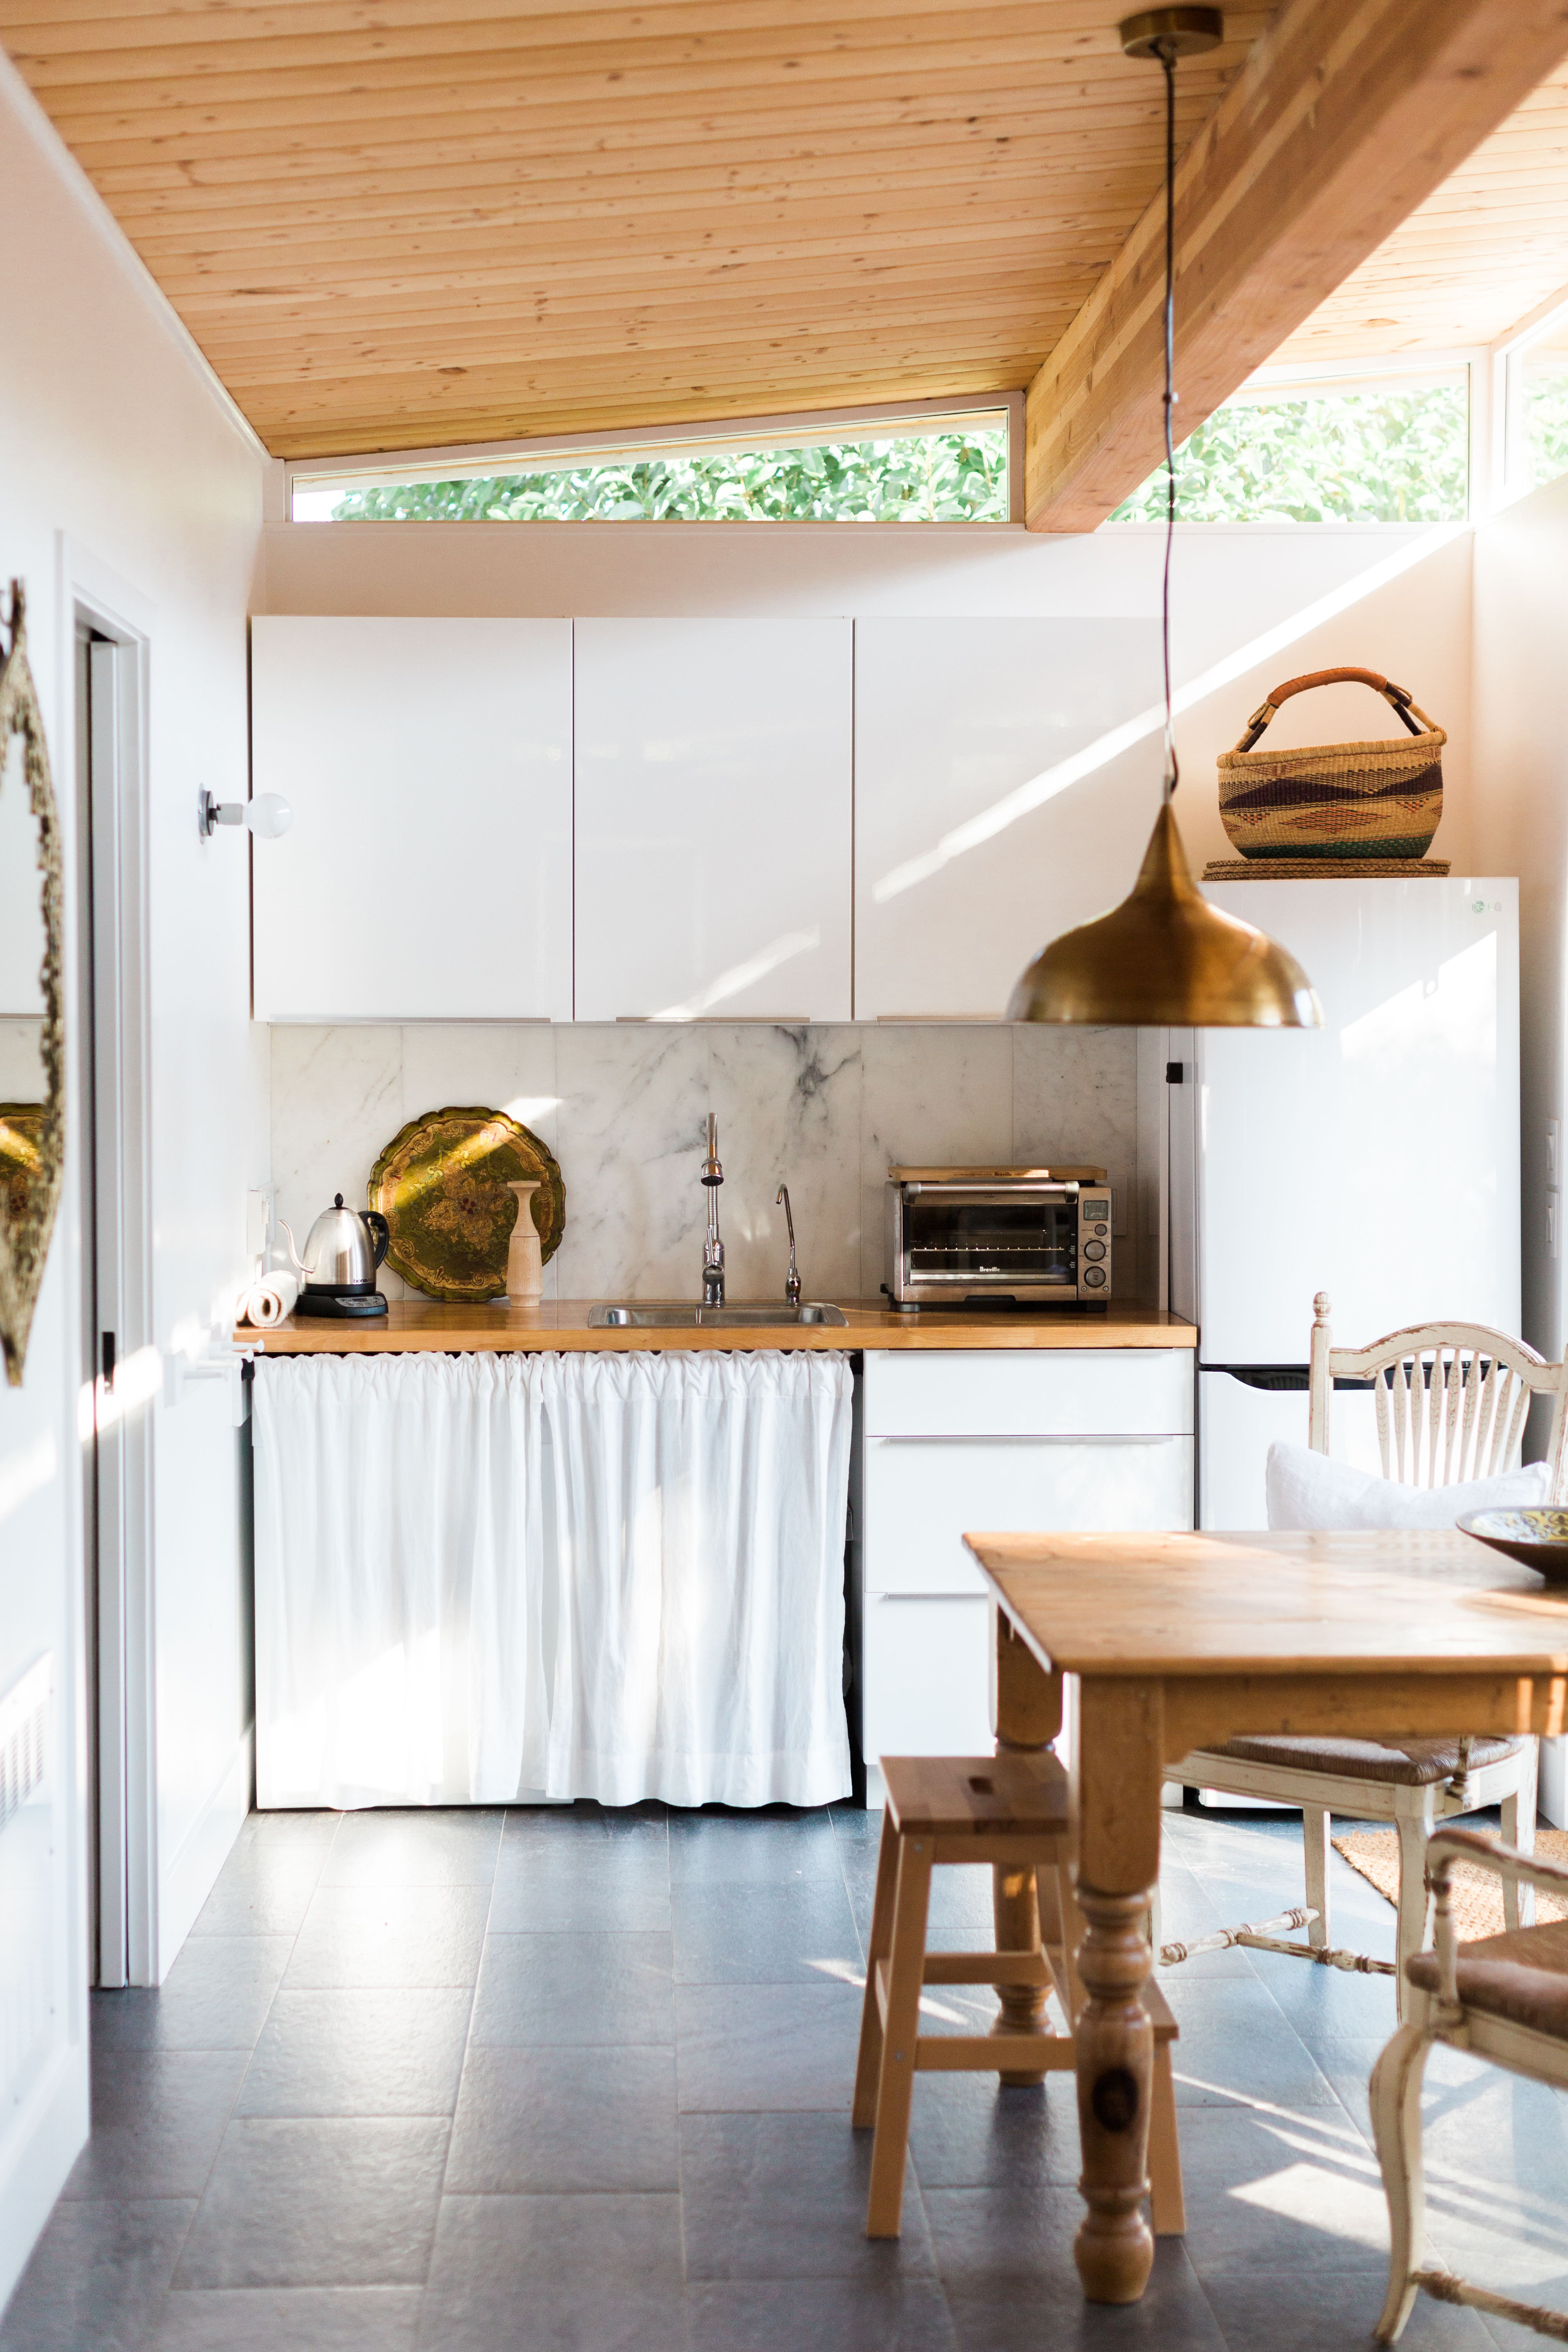 This tiny kitchen is beautiful, clean and functional.  The wall paint color is Benjamin Moore, Chantilly Lace Eggshell. (Chosen for its perfect match to the vinyl windows and happily turns out to be a great white that I would use again.)